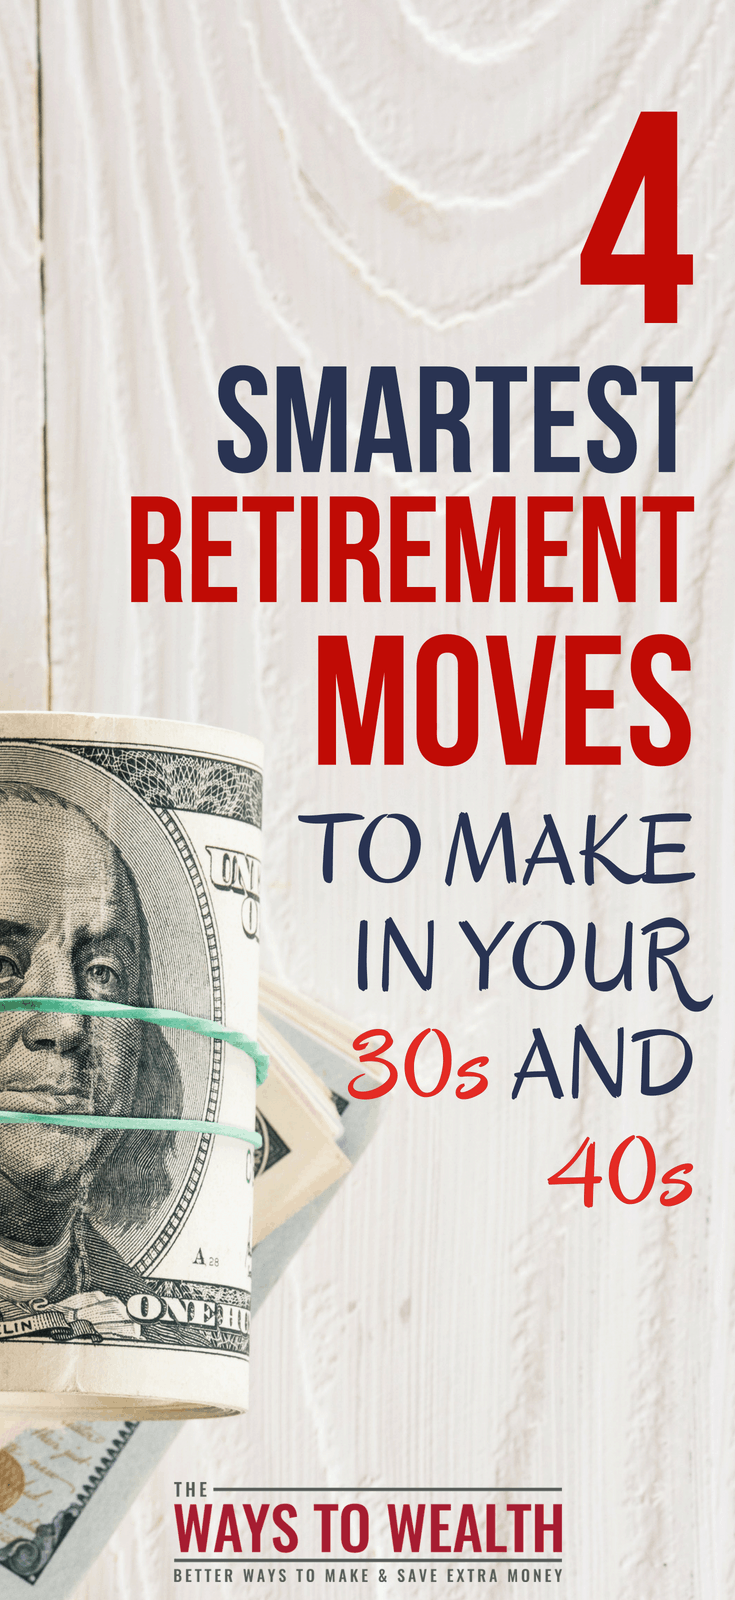 The 4 Smartest Retirement Moves to Make in Your 30s and 40s  money tips in your 30s | financial goals in your 30s | best investments for 30 somethings | financial advice for 30 year olds | best investment strategy for 35 year old | financial goals for your 40s | financial advice for 40 somethings | this is how your finances should look in your 40s | investing in your 40s | personal finance at 40 | how much should i be saving for retirement in my 40s | retirement planning tips | retirement goals by age  #ad #thewaystowealth #retirement #savingmoney #investing